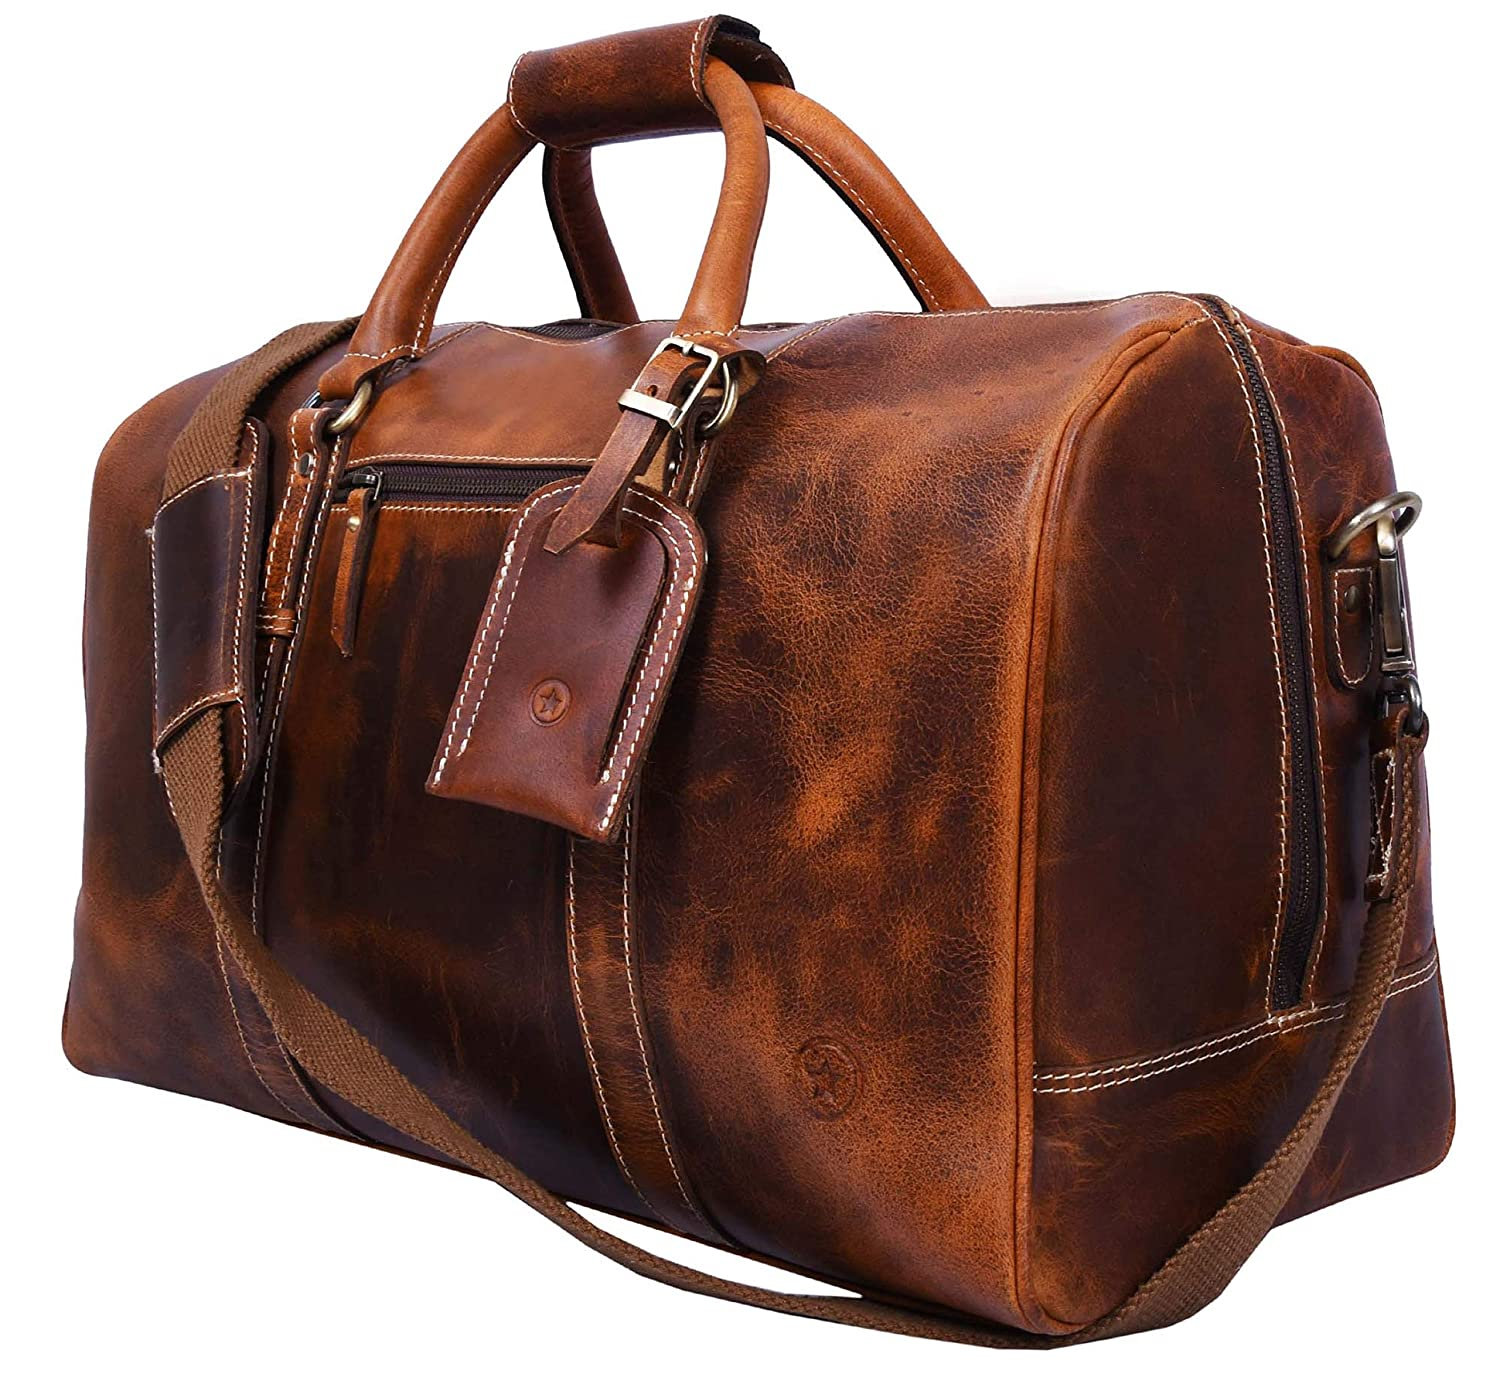 15bc2f982 Amazon.com: Leather Travel Duffle Bag   Gym Sports Bag Airplane Luggage  Carry-On Bag By Aaron Leather (Caramel): Aaron Leather goods